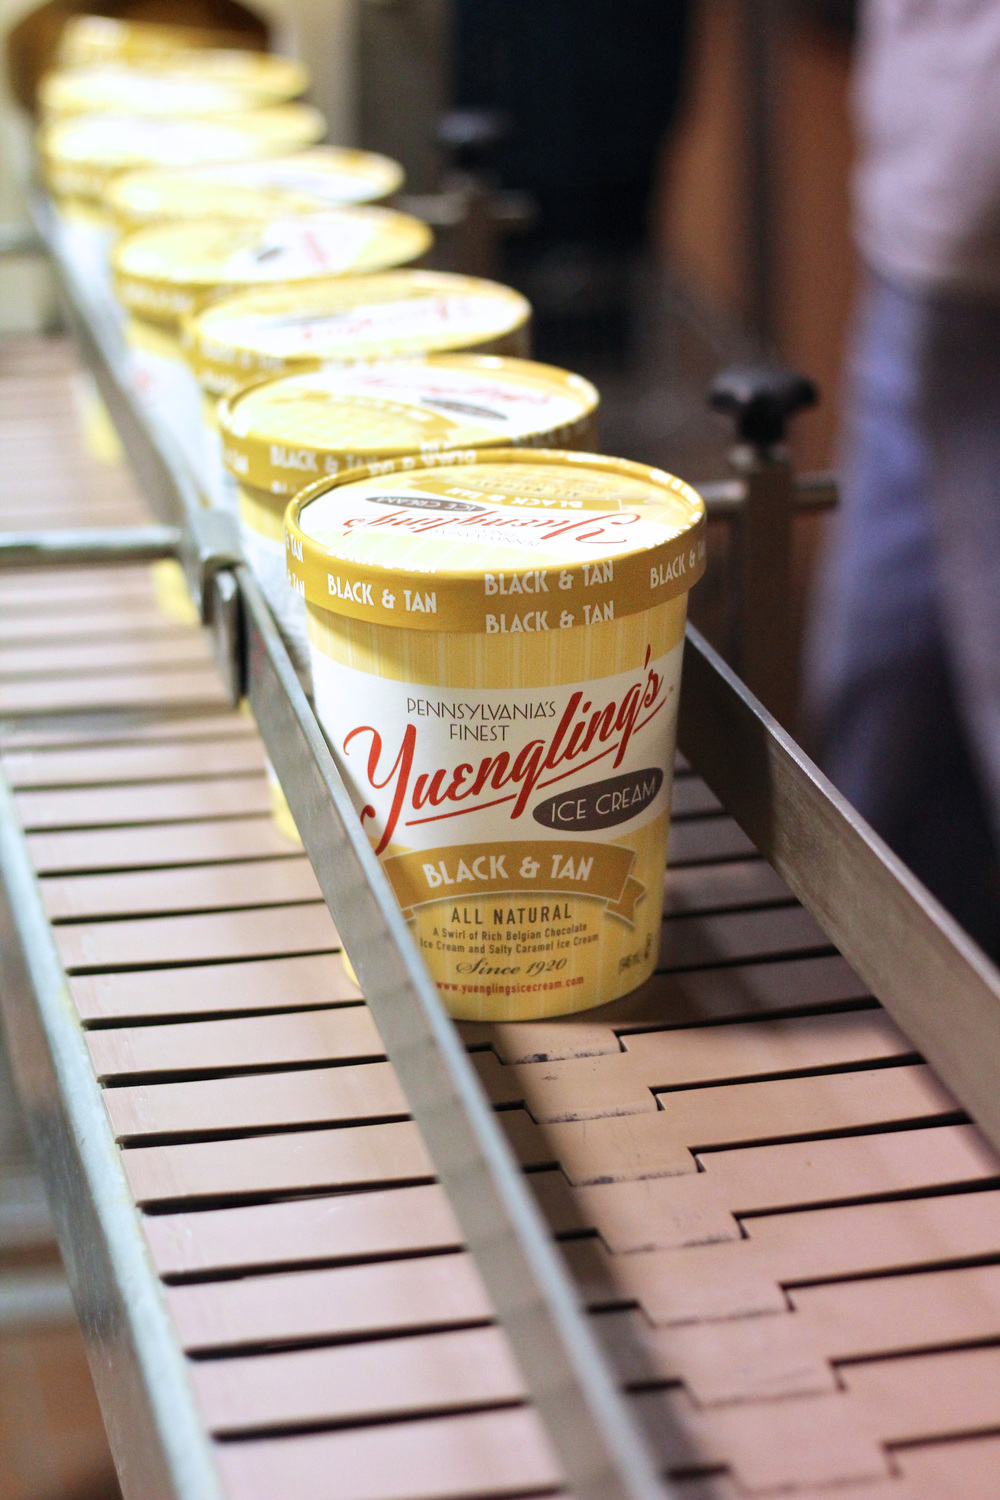 Yuengling's Ice Cream-Black & Tan Production 006.jpg